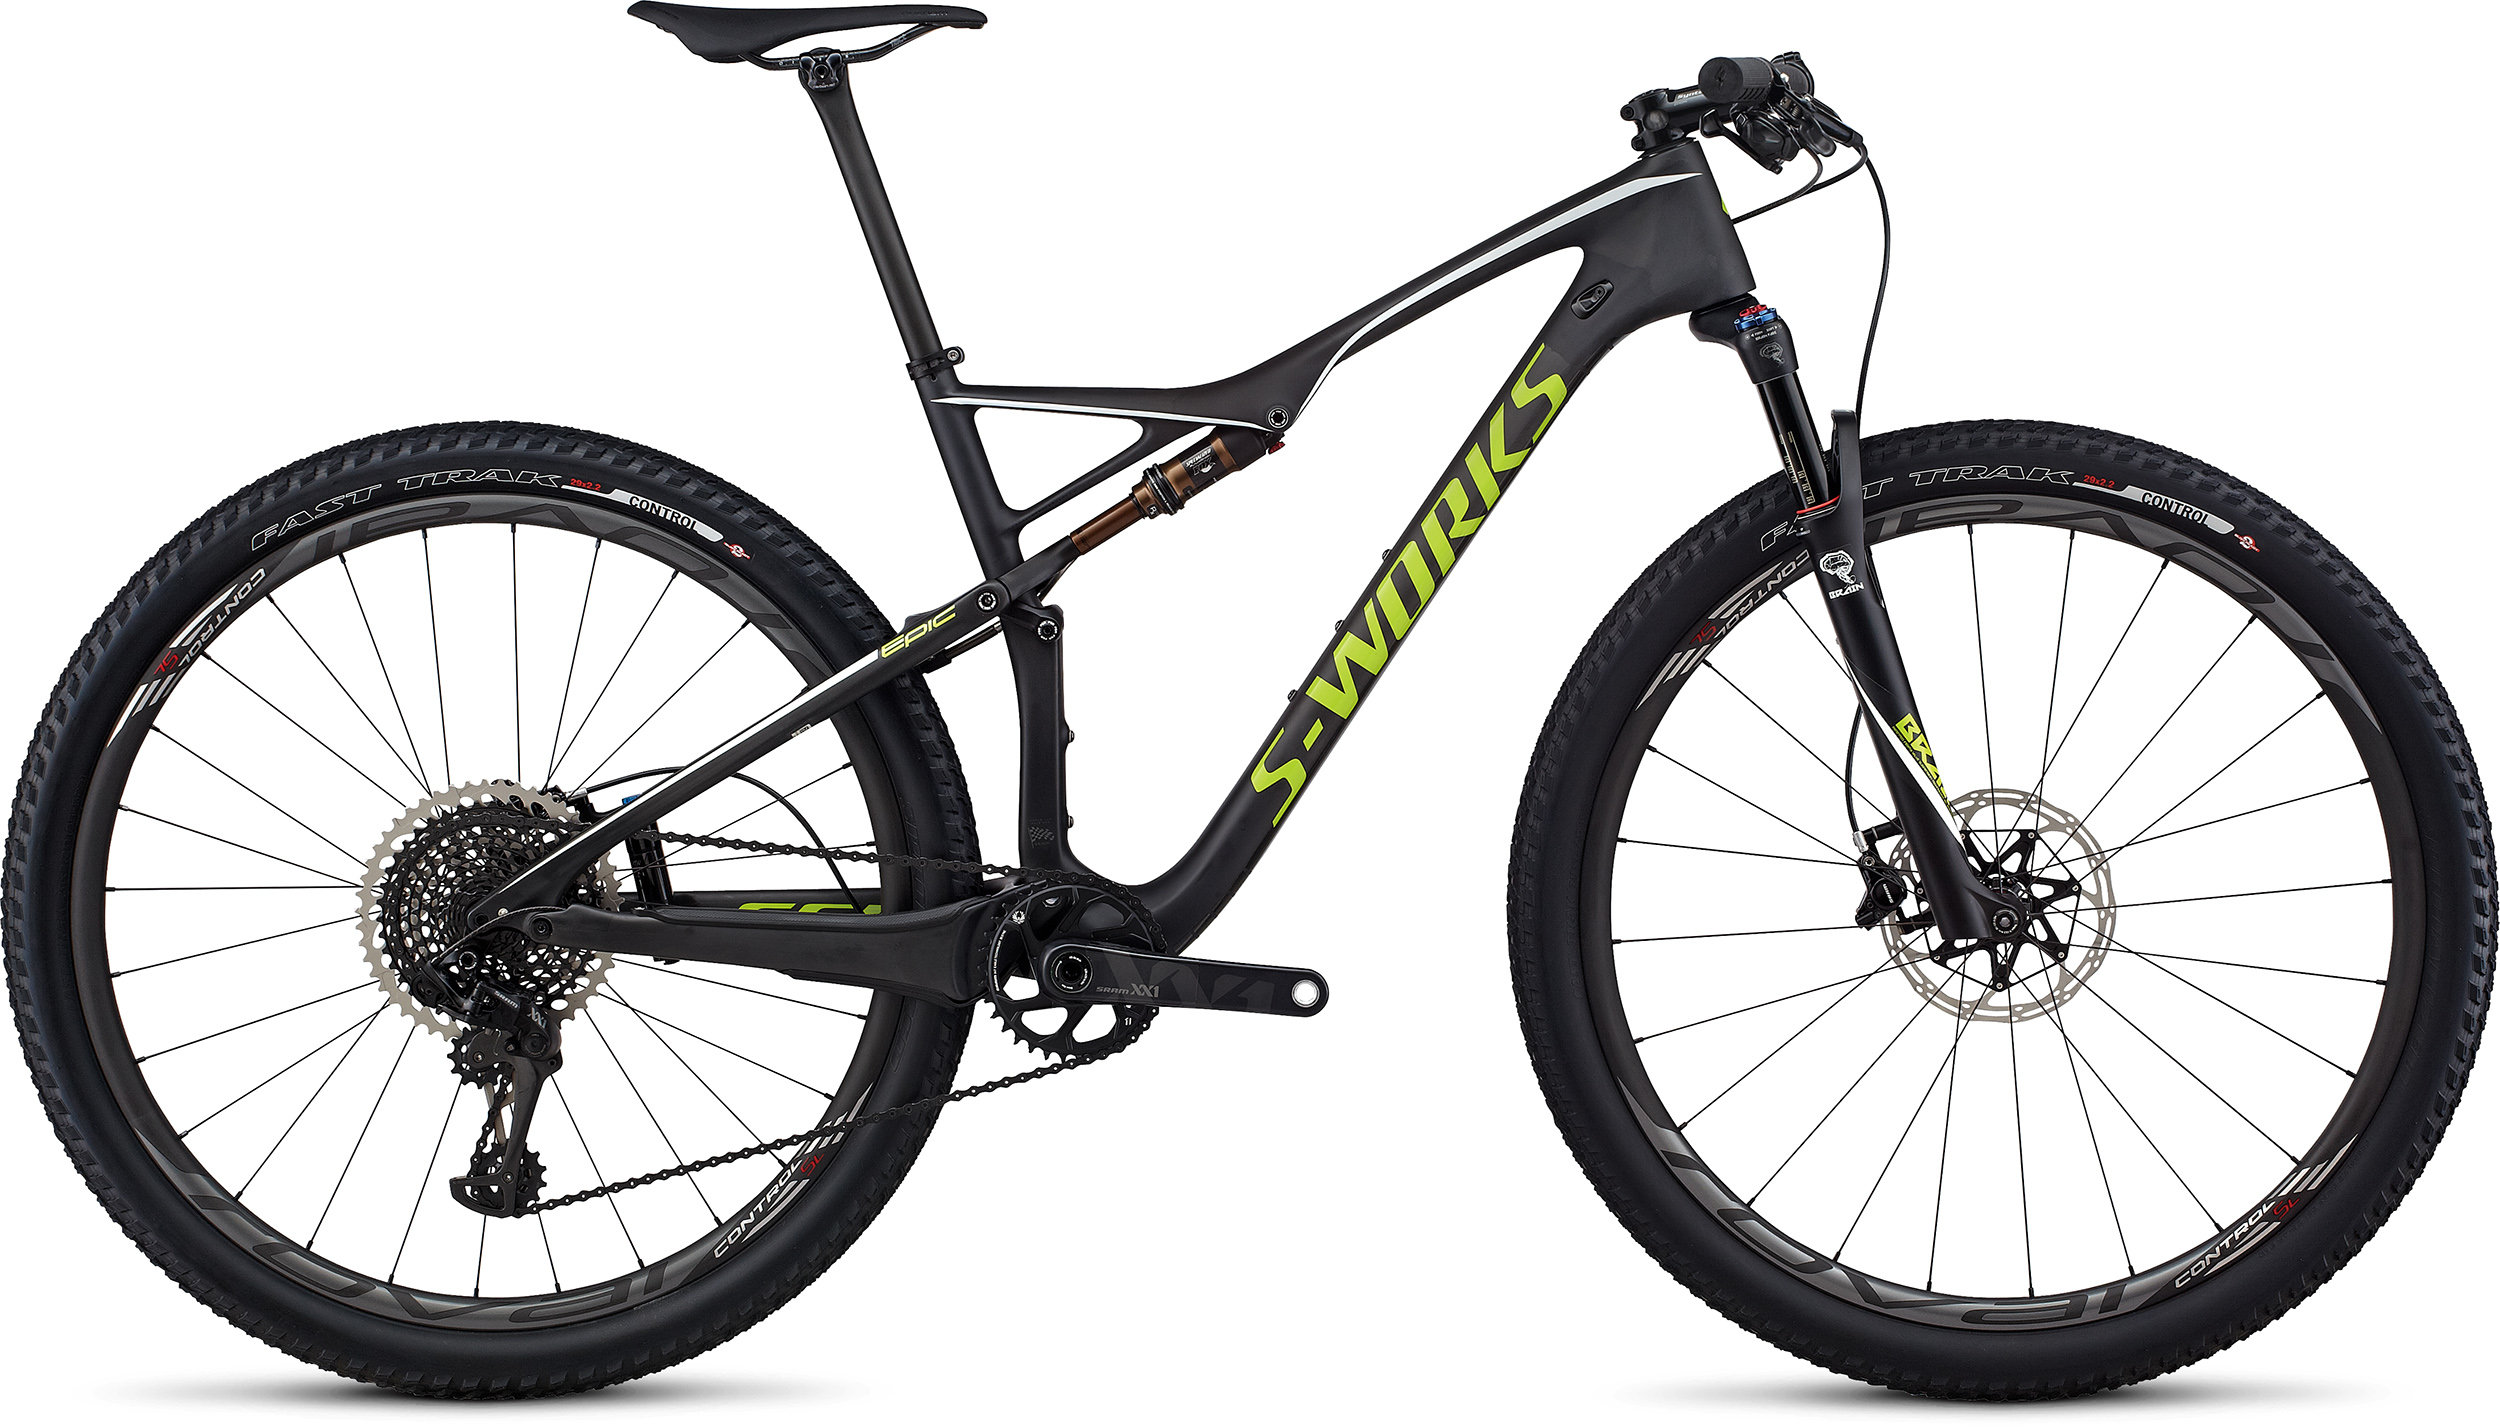 SPECIALIZED SW EPIC FSR CARBON WC 29 CARB/HYP/WHT S - Bike Maniac